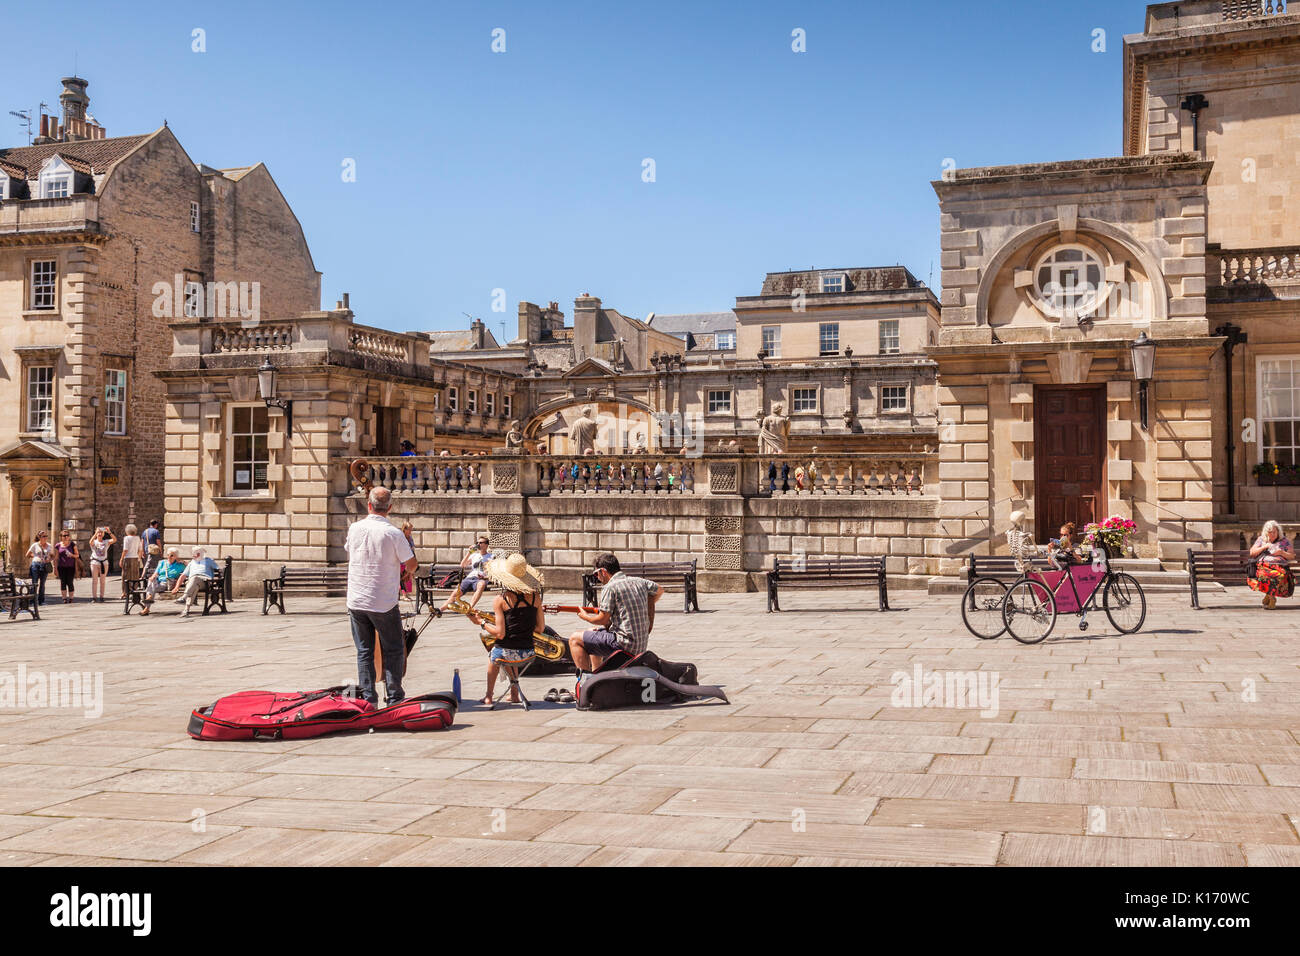 5 July 2017: Bath, Somerset, England, UK - Buskers in Kingston Parade, a small square beside the Roman Baths. - Stock Image